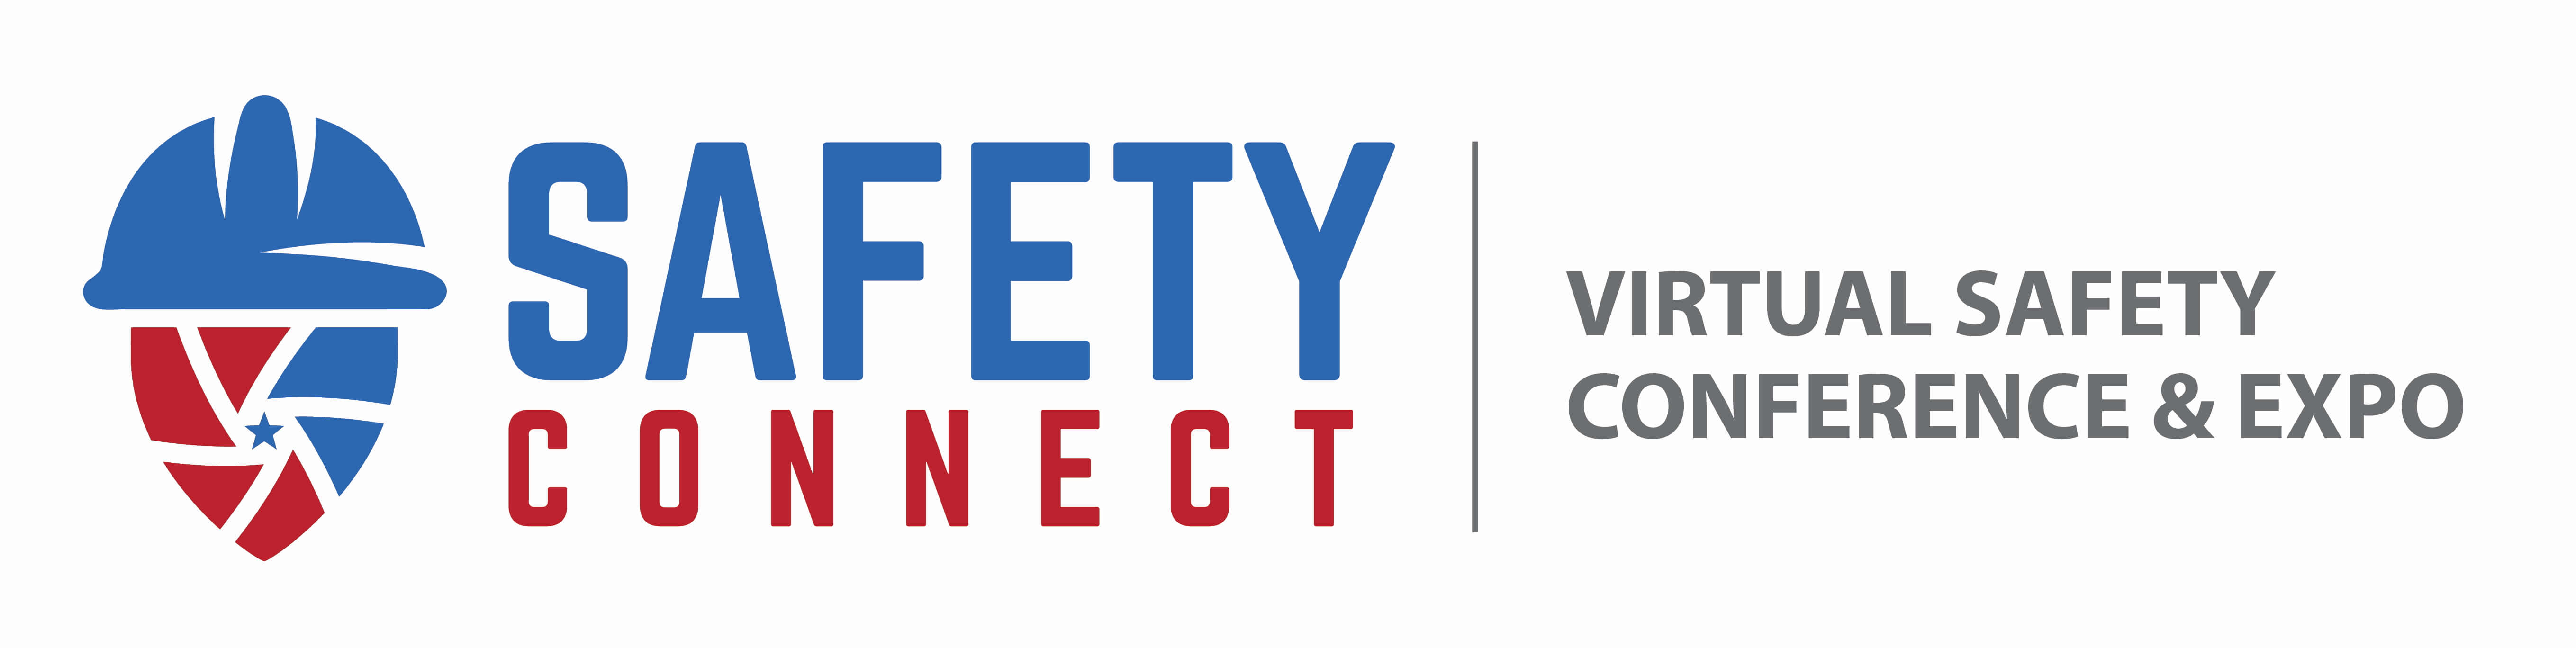 Safety Connect Virtual Conference Expo banner